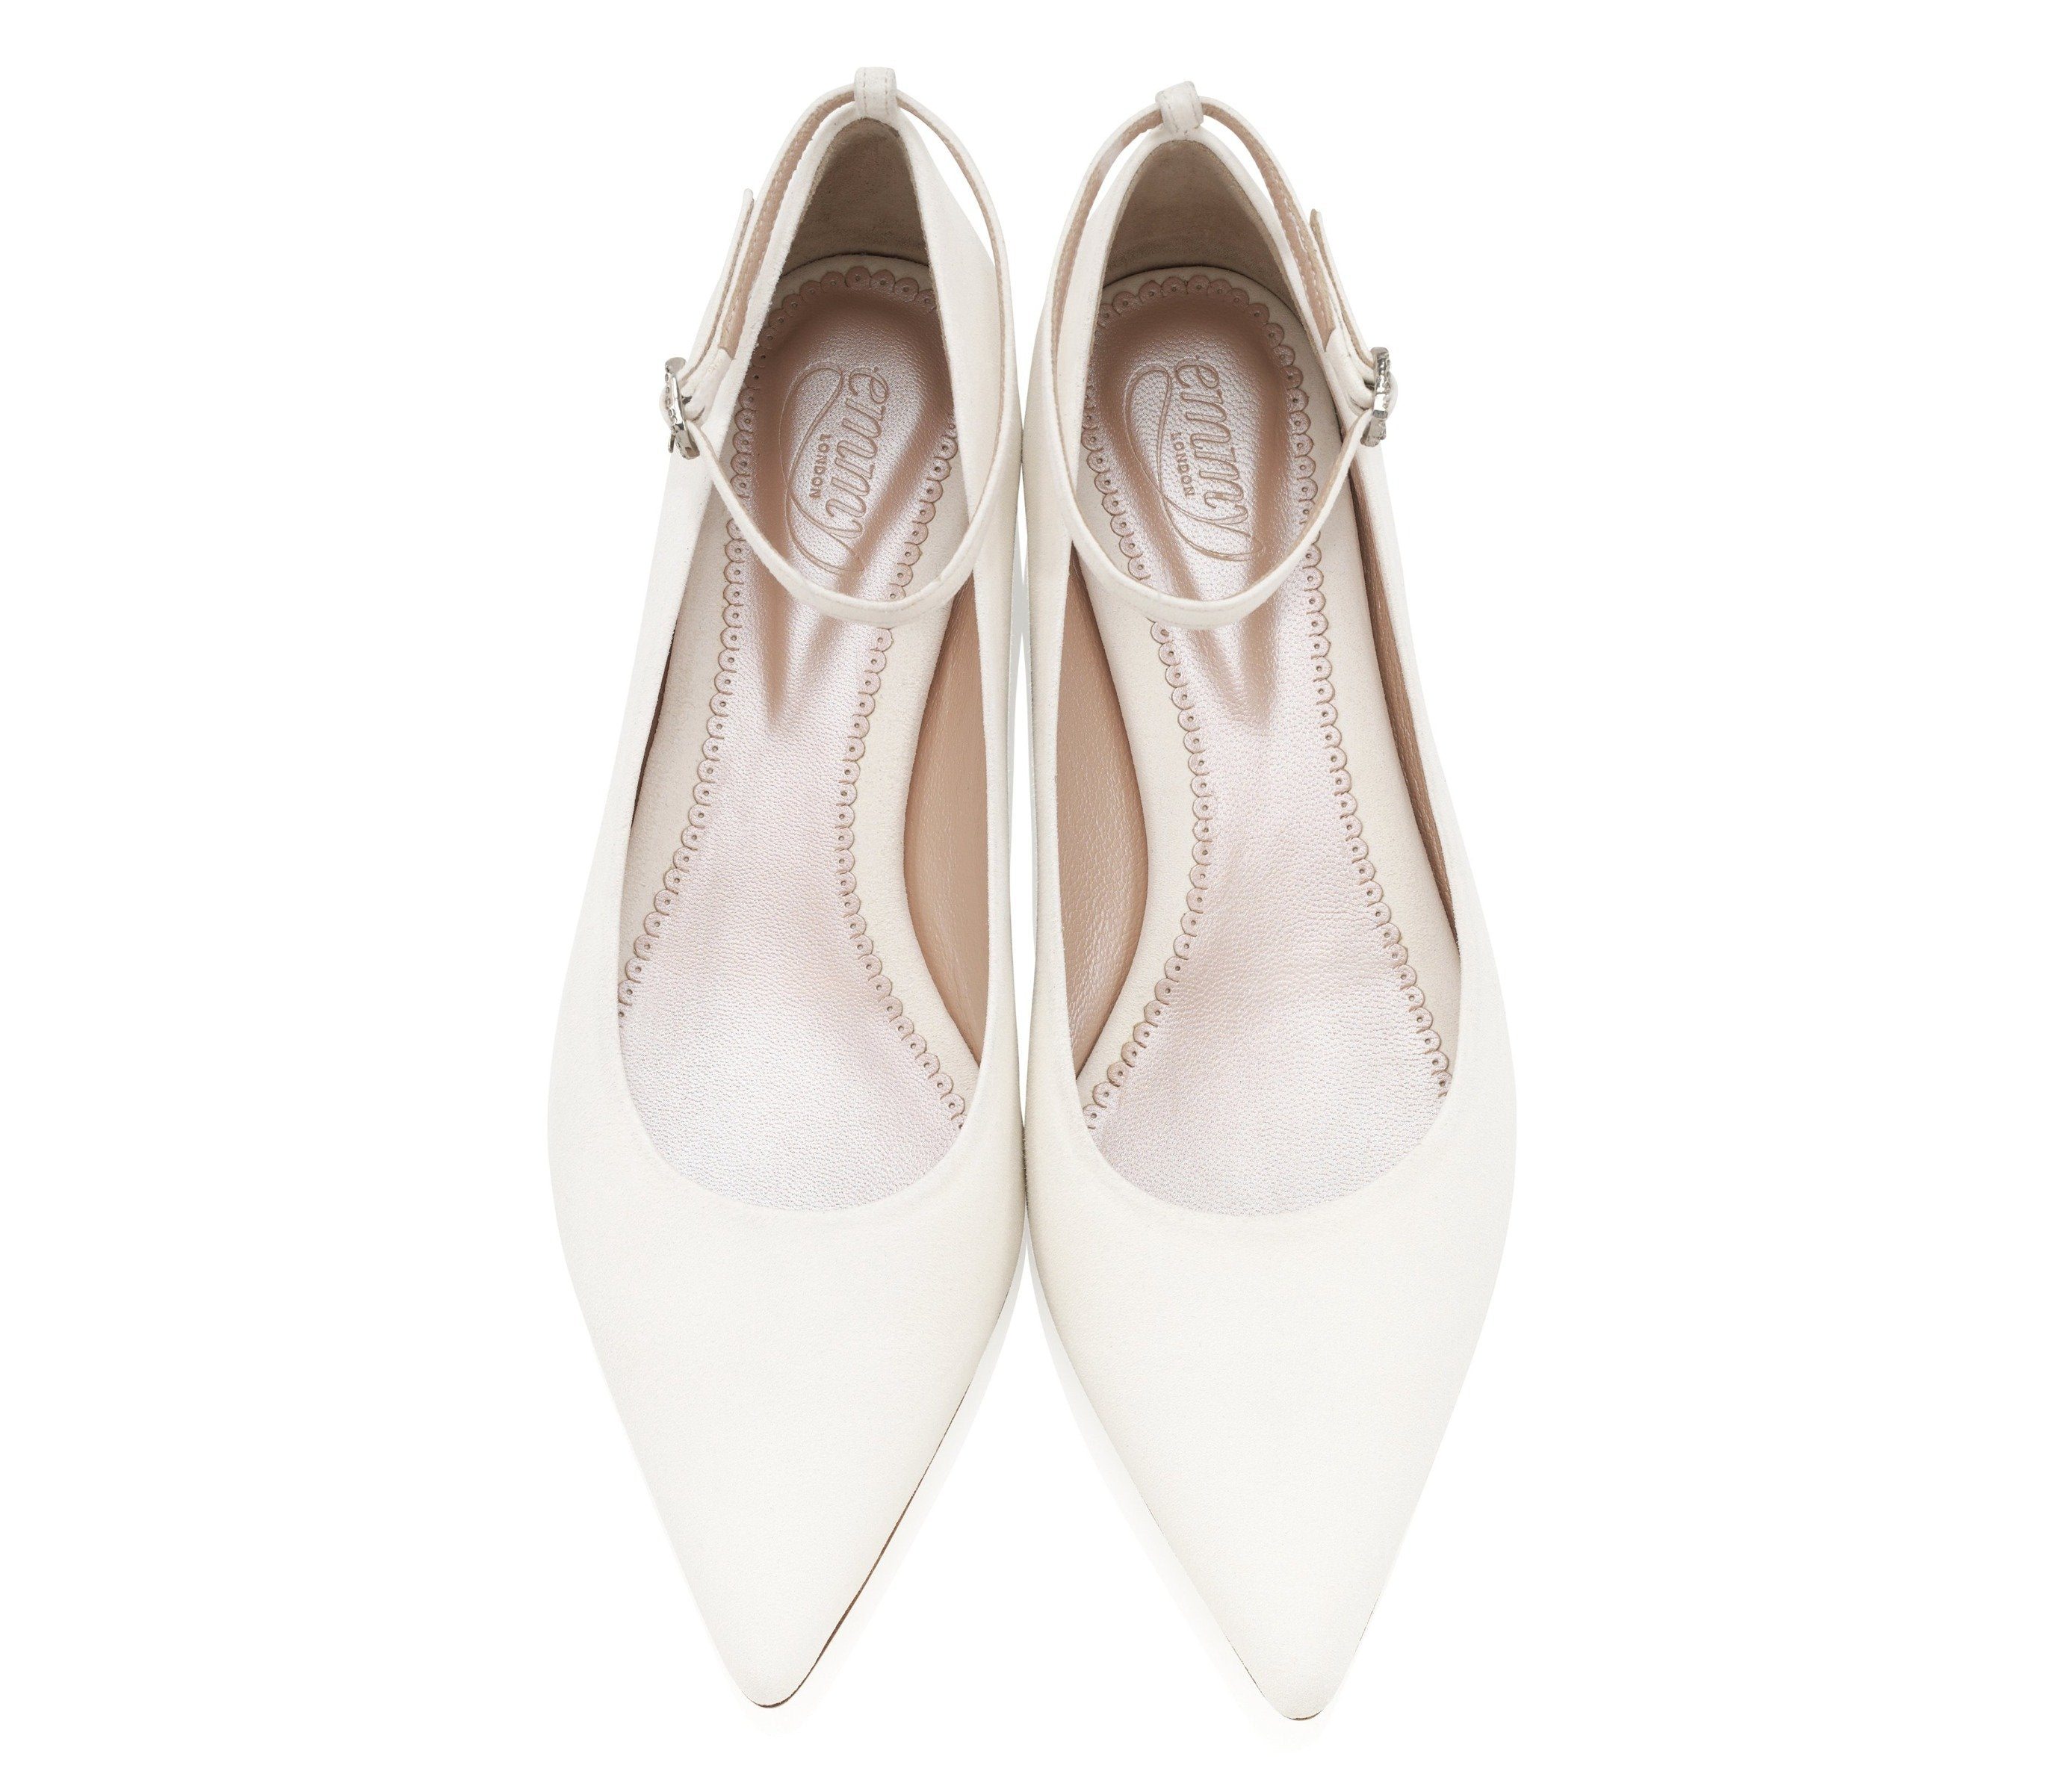 Zoe Ivory Flat Bridal Shoes By Emmy London